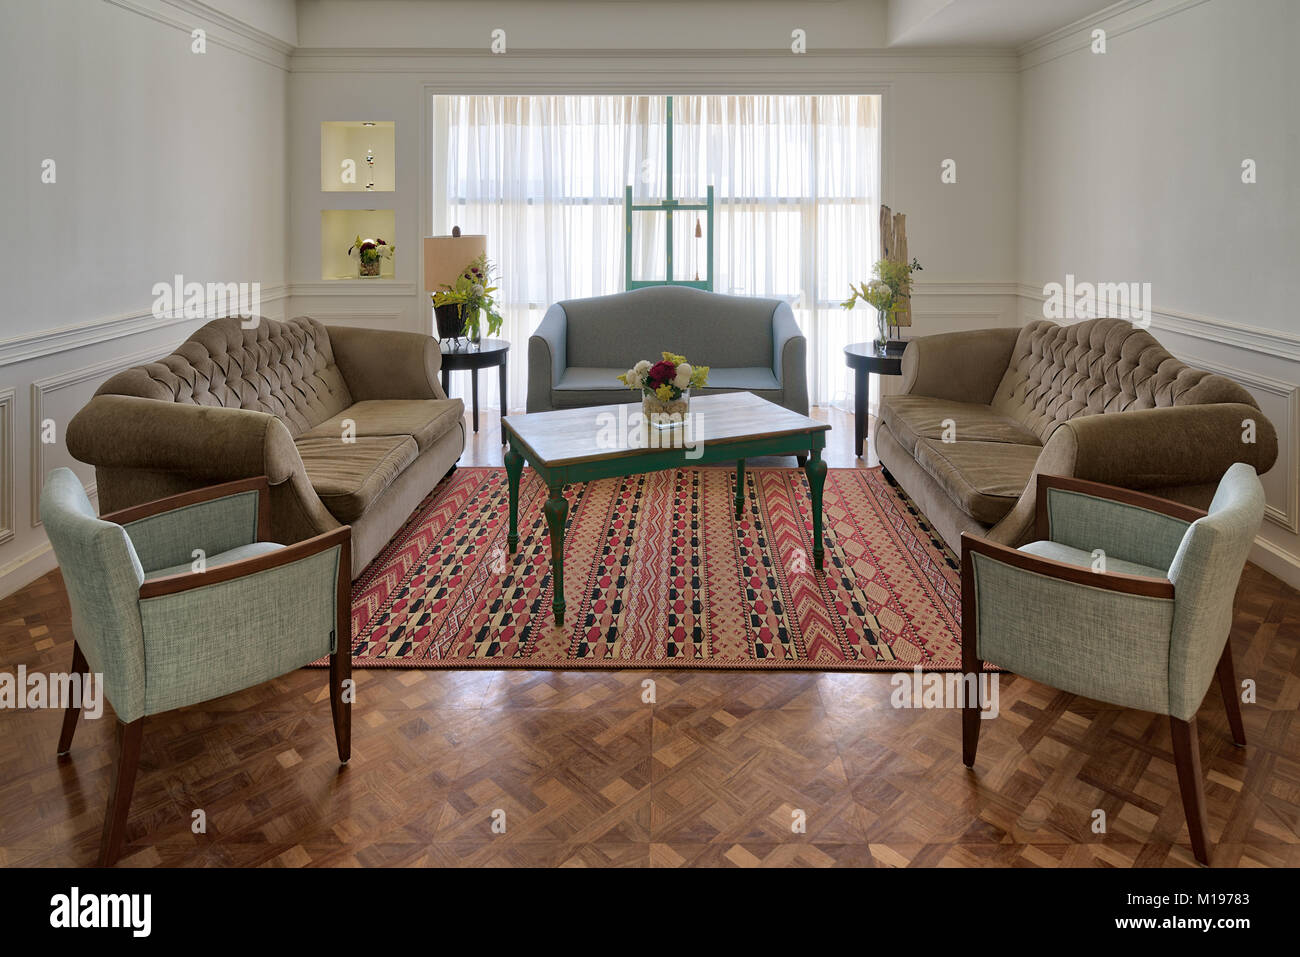 Interior shot of luxury modern living room with three couches, two armchairs, and vintage wooden table on background - Stock Image